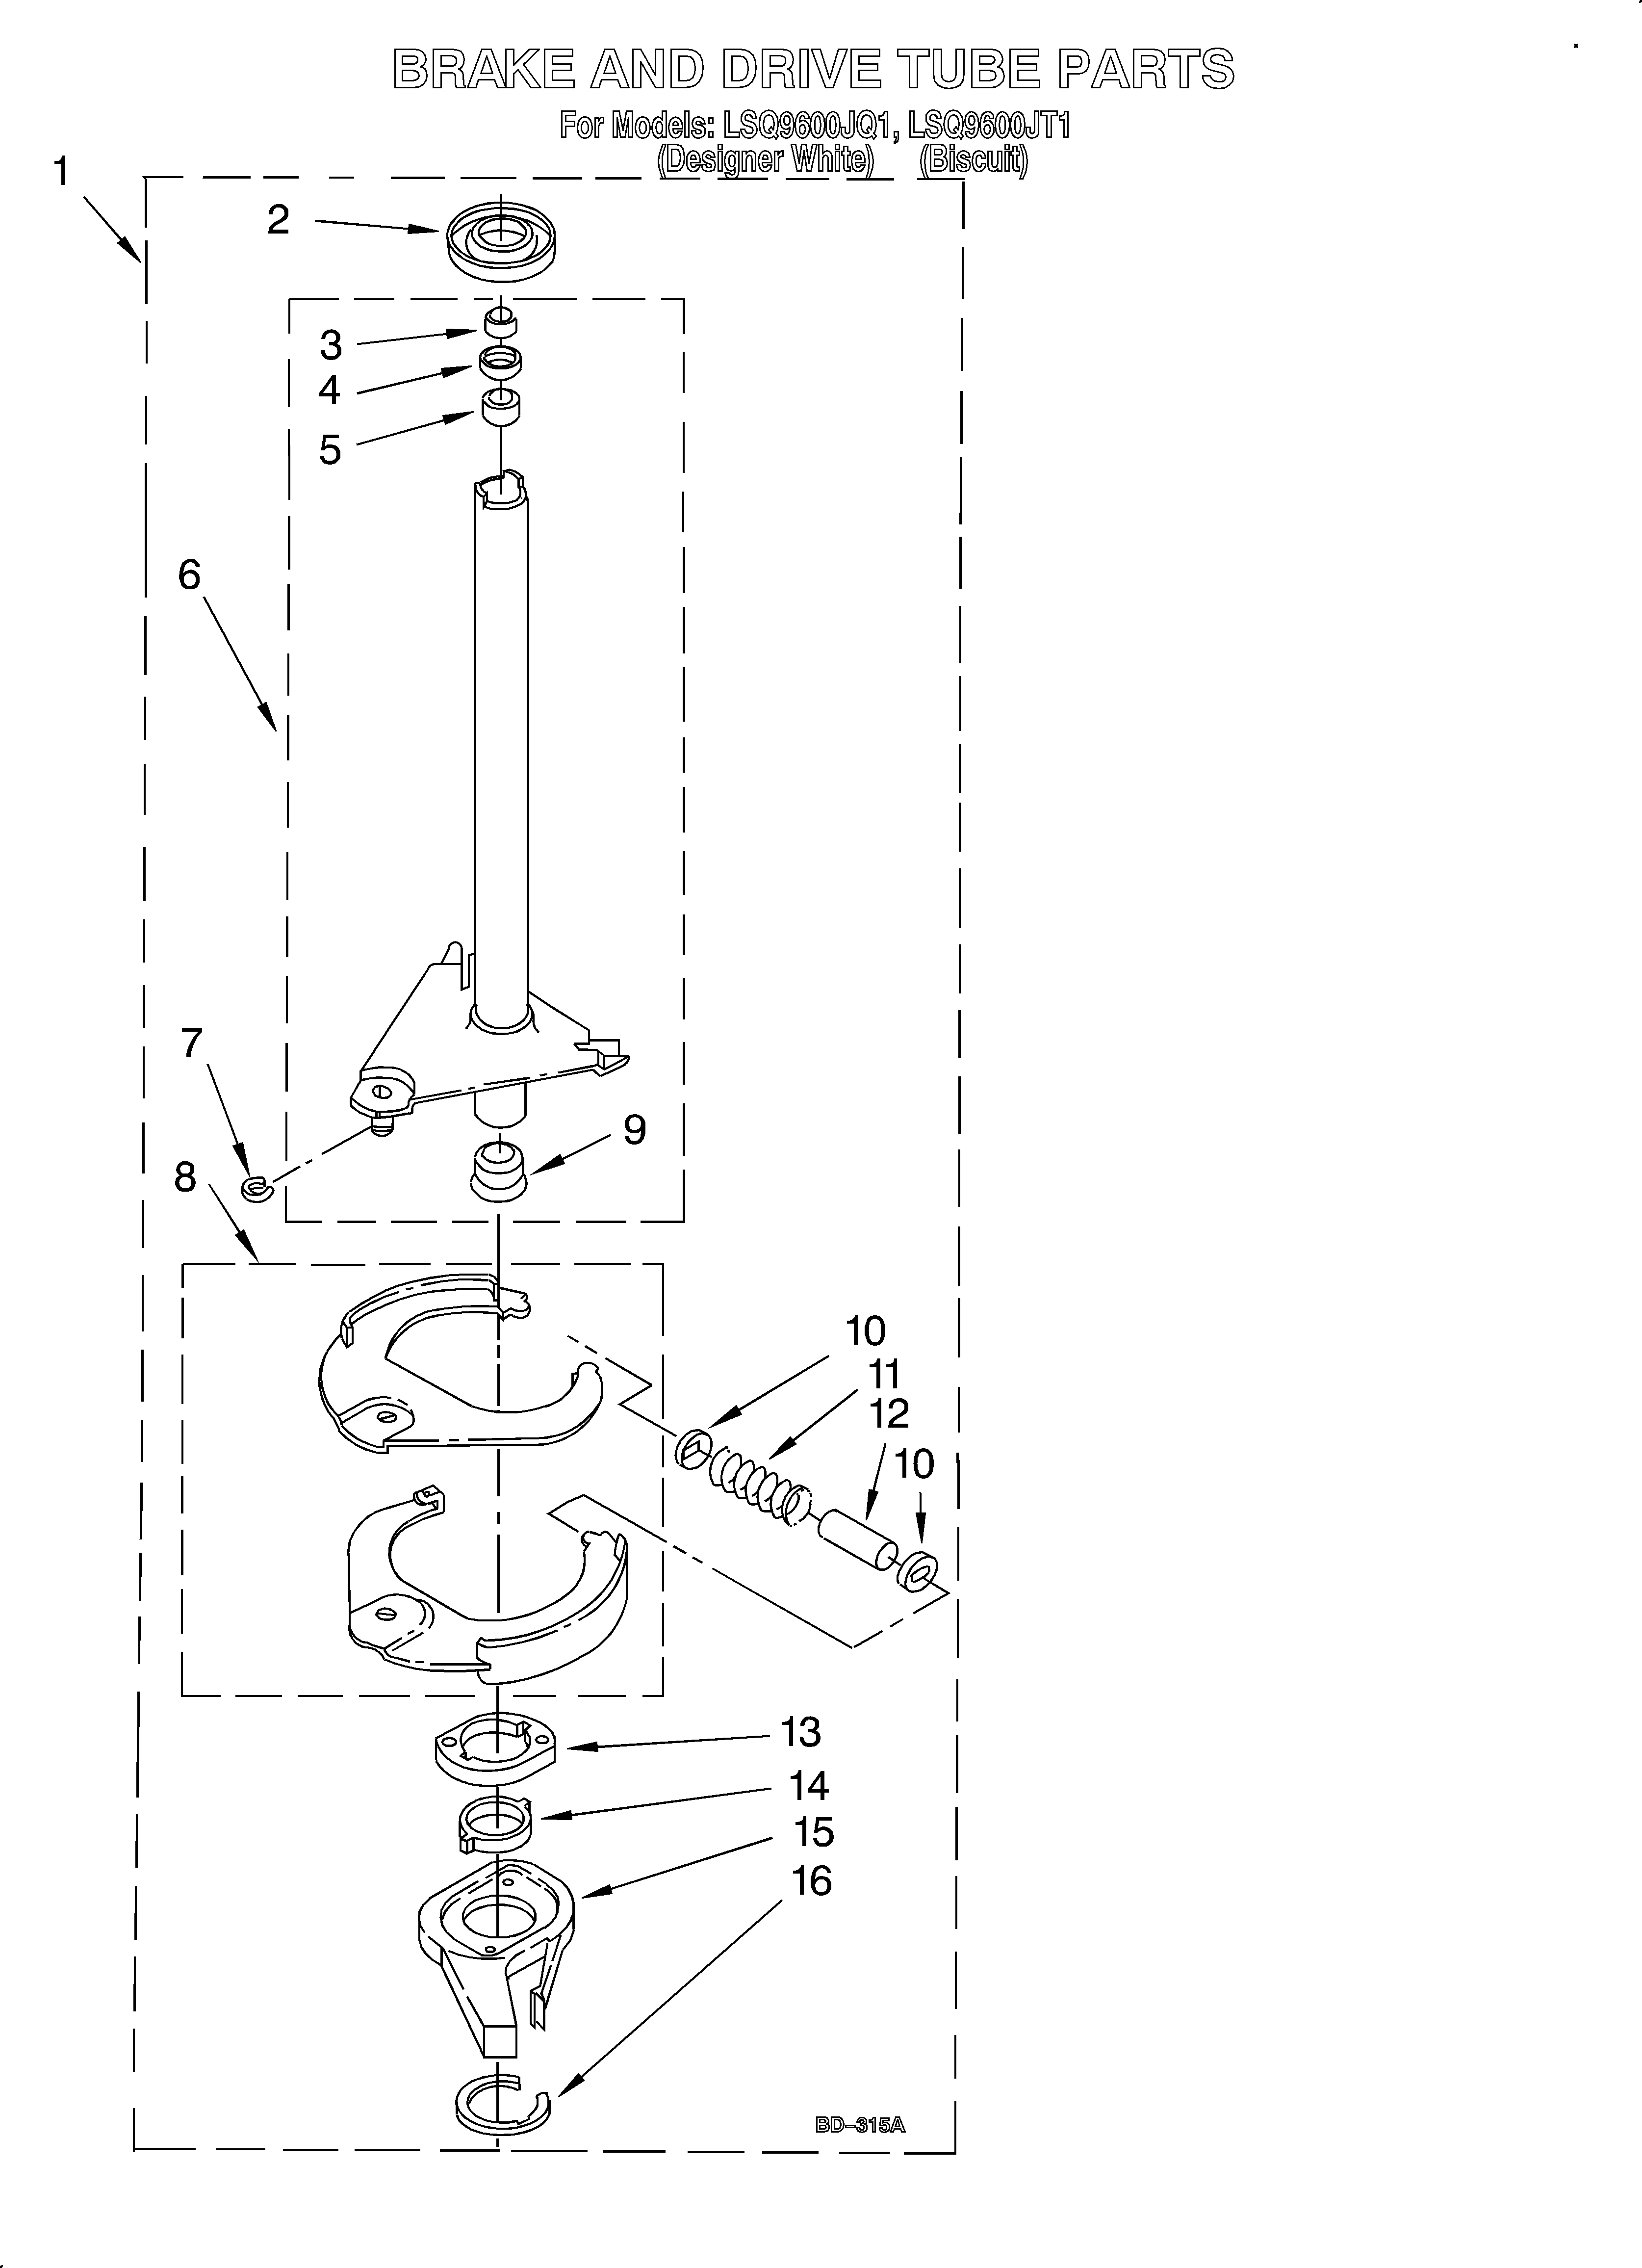 Whirlpool LSQ9600JT1 brake and drive tube diagram